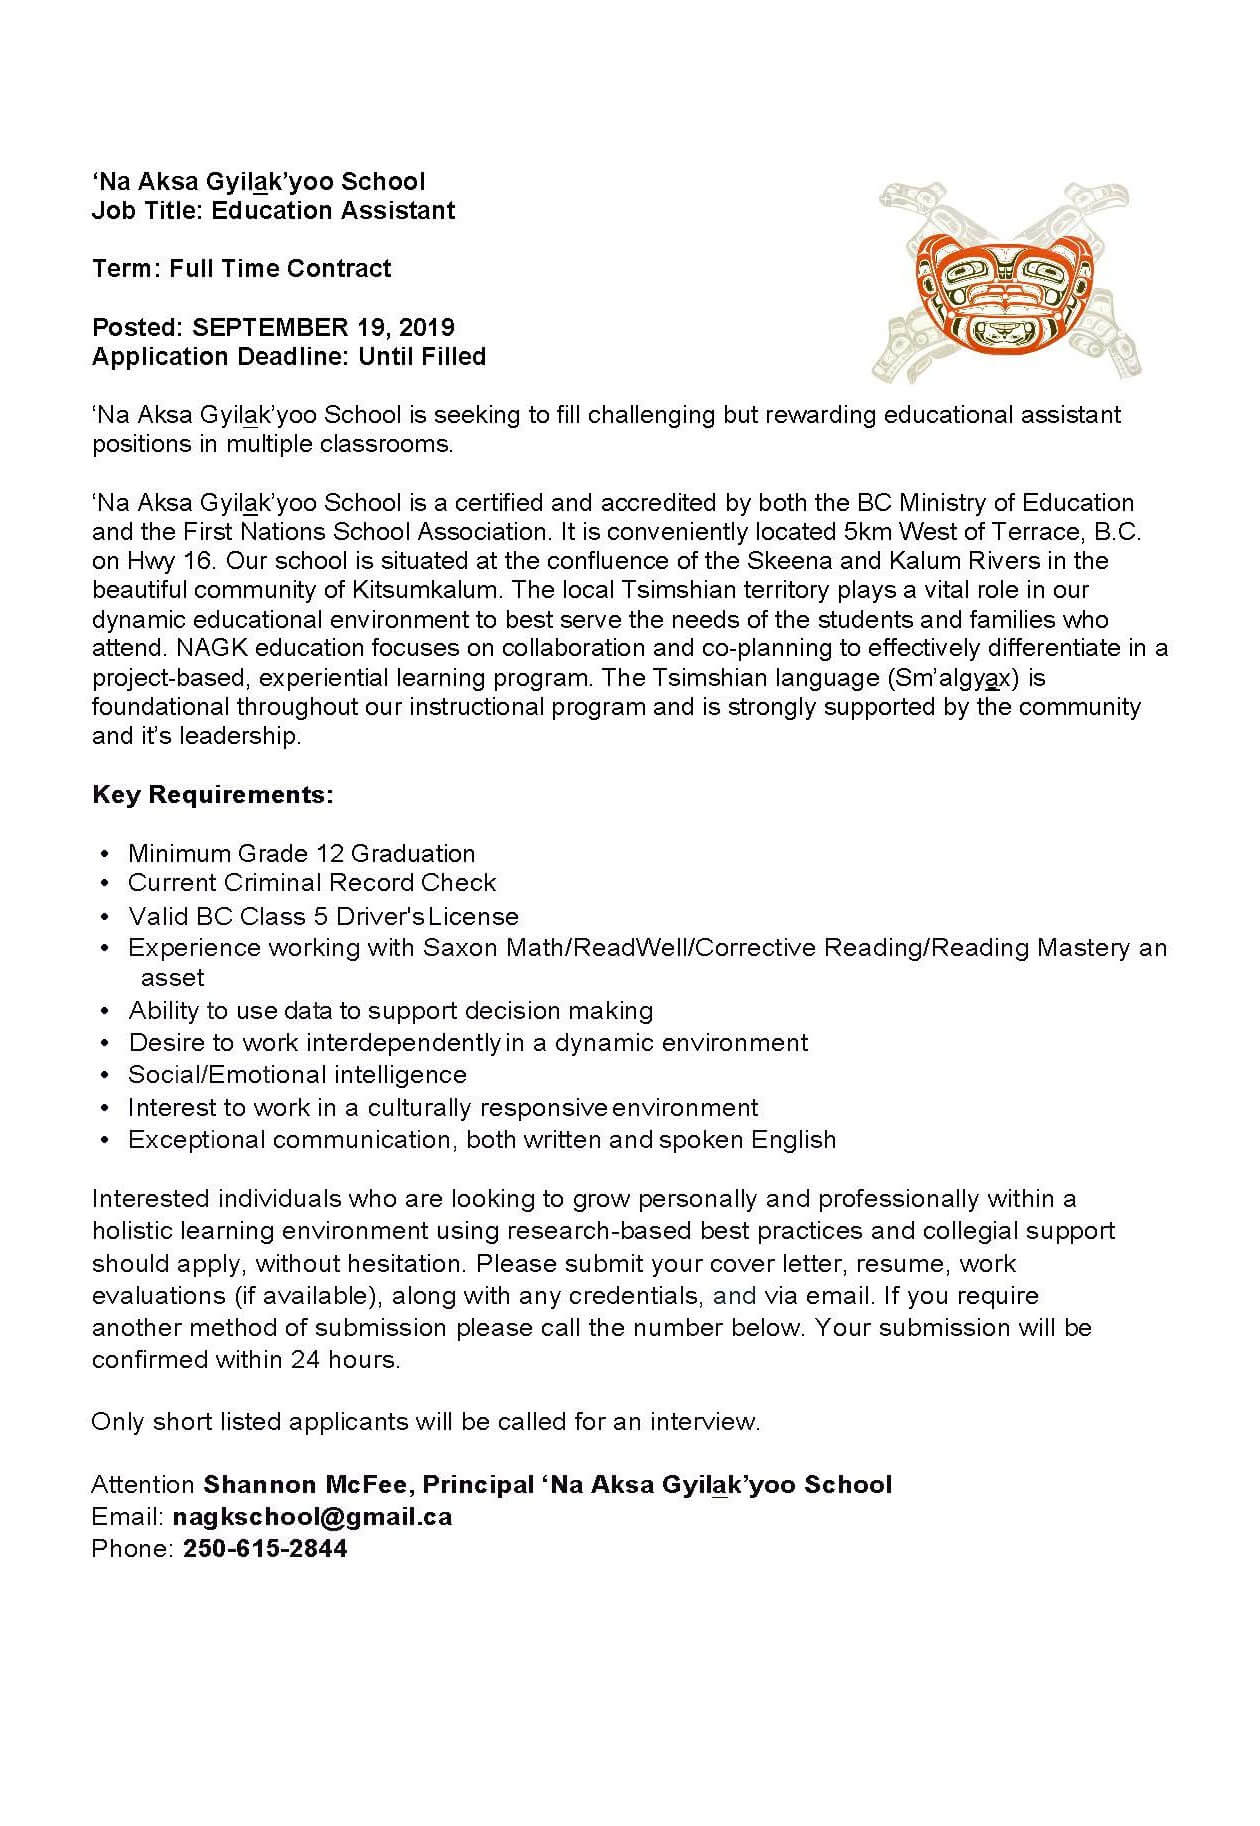 Job Posting: Education Assistant | Kitsumkalum, a Galts\'ap ...